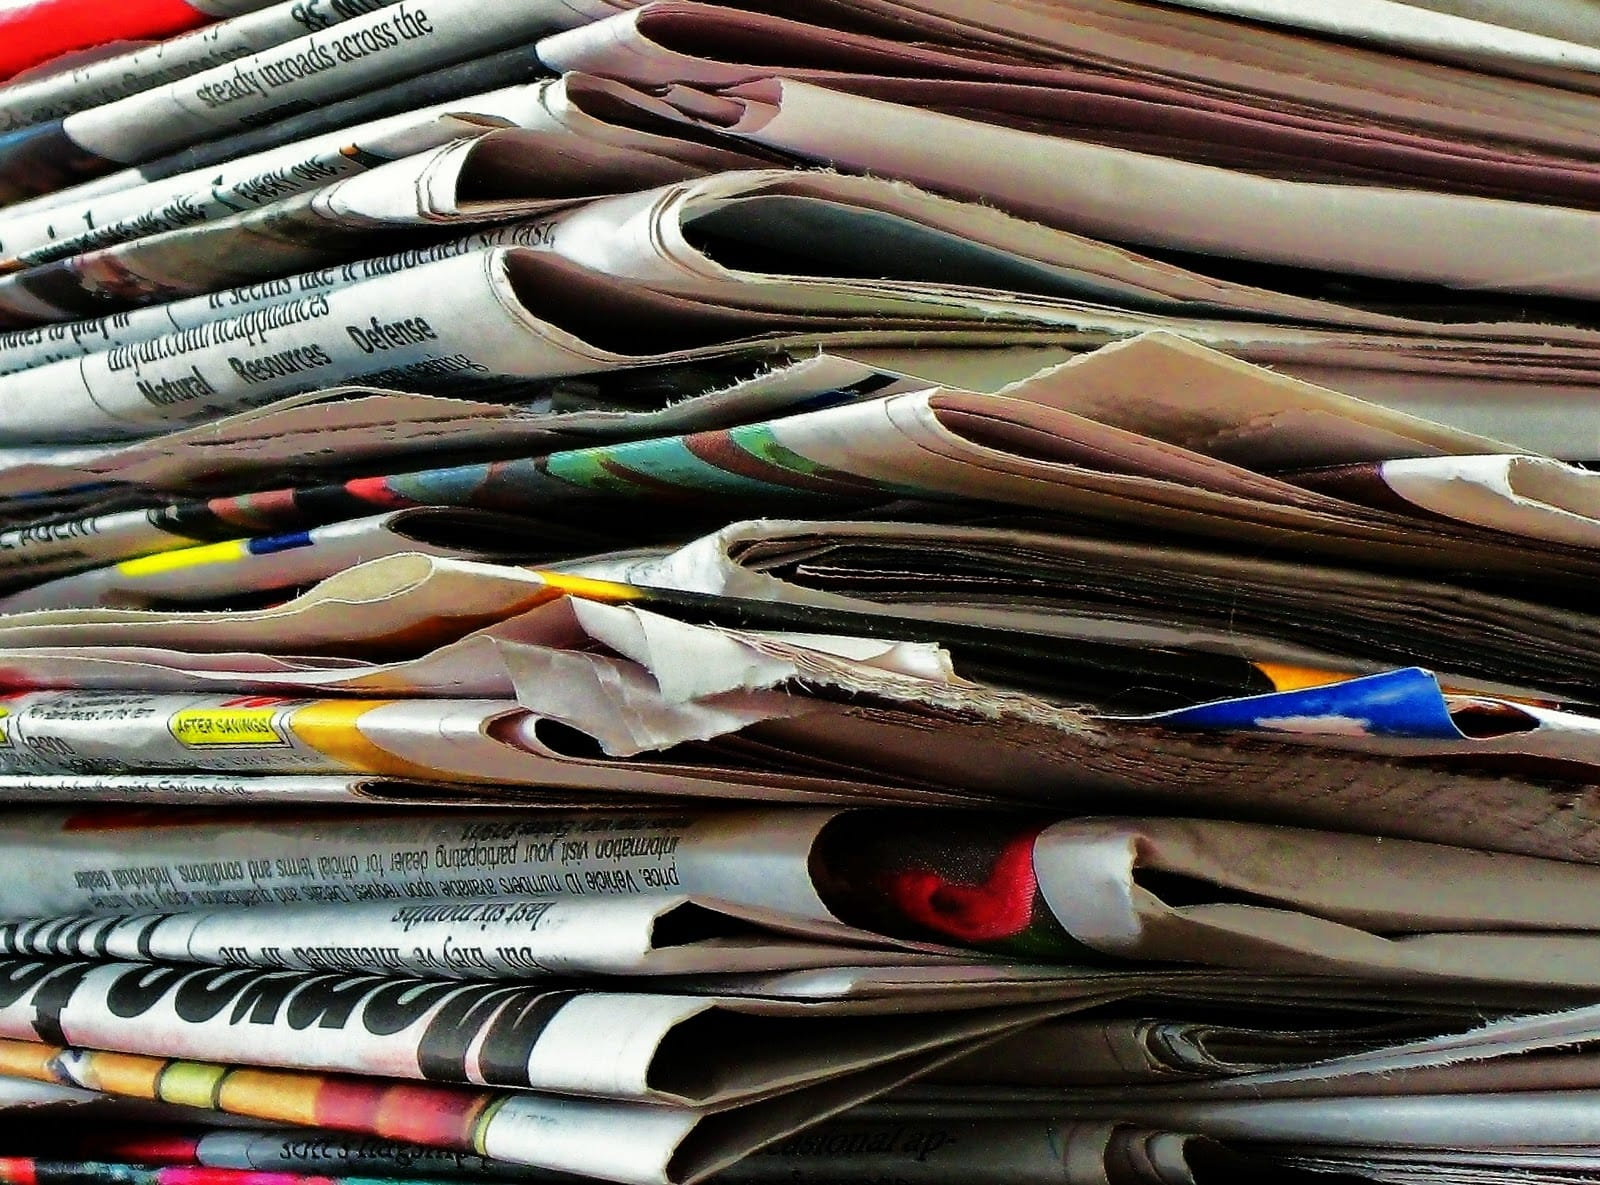 My-stack-of-newspapers